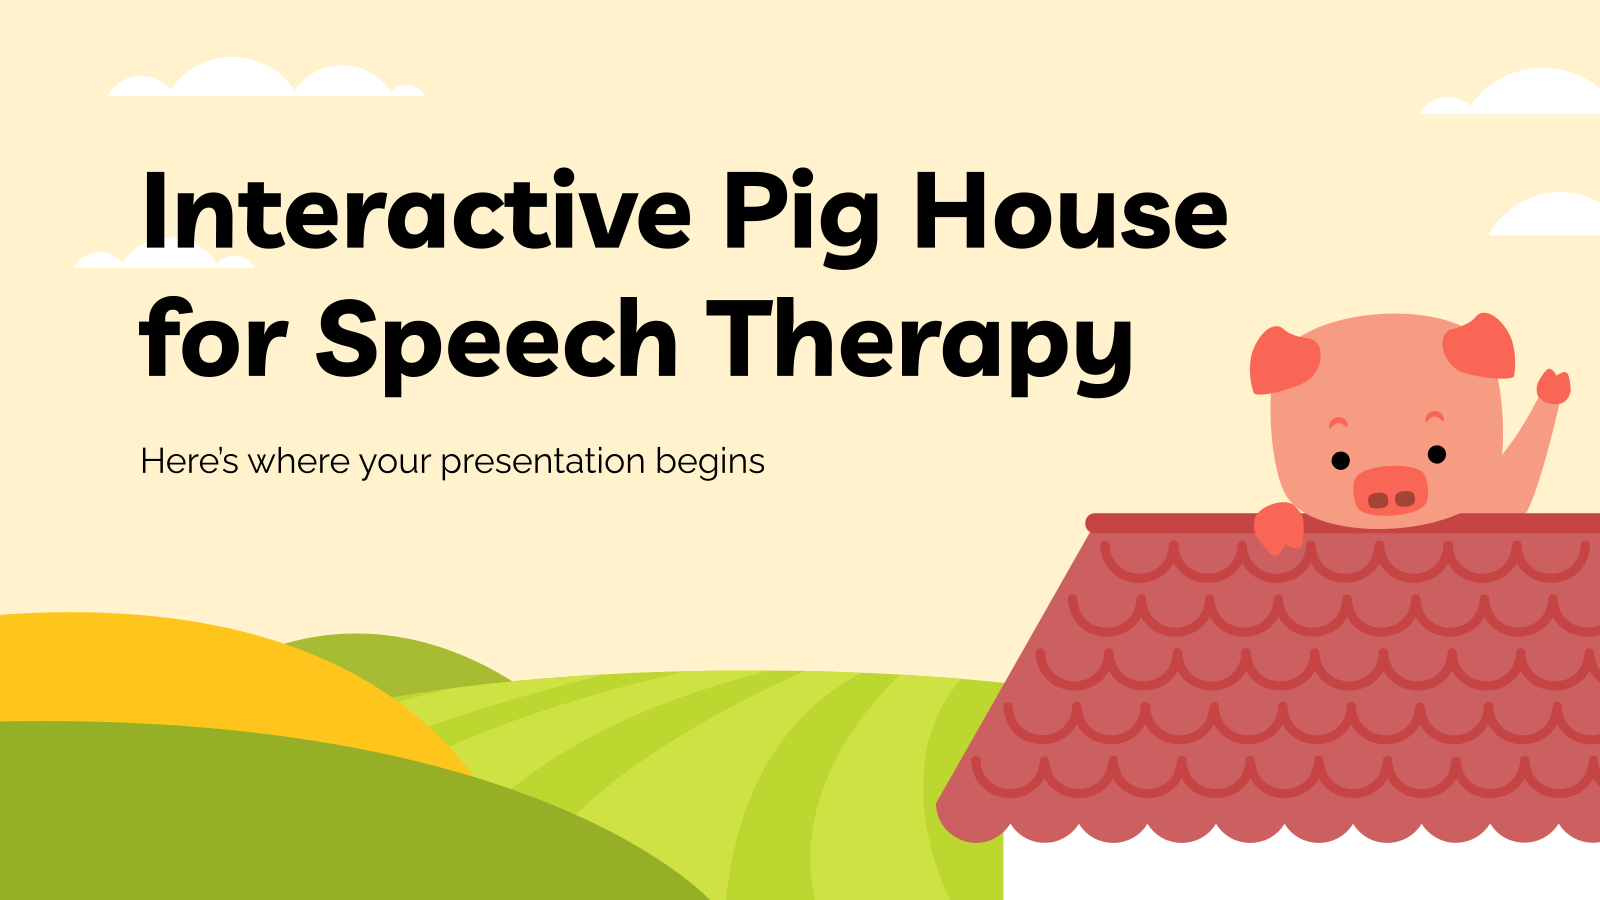 Interactive Pig House for Speech Therapy presentation template